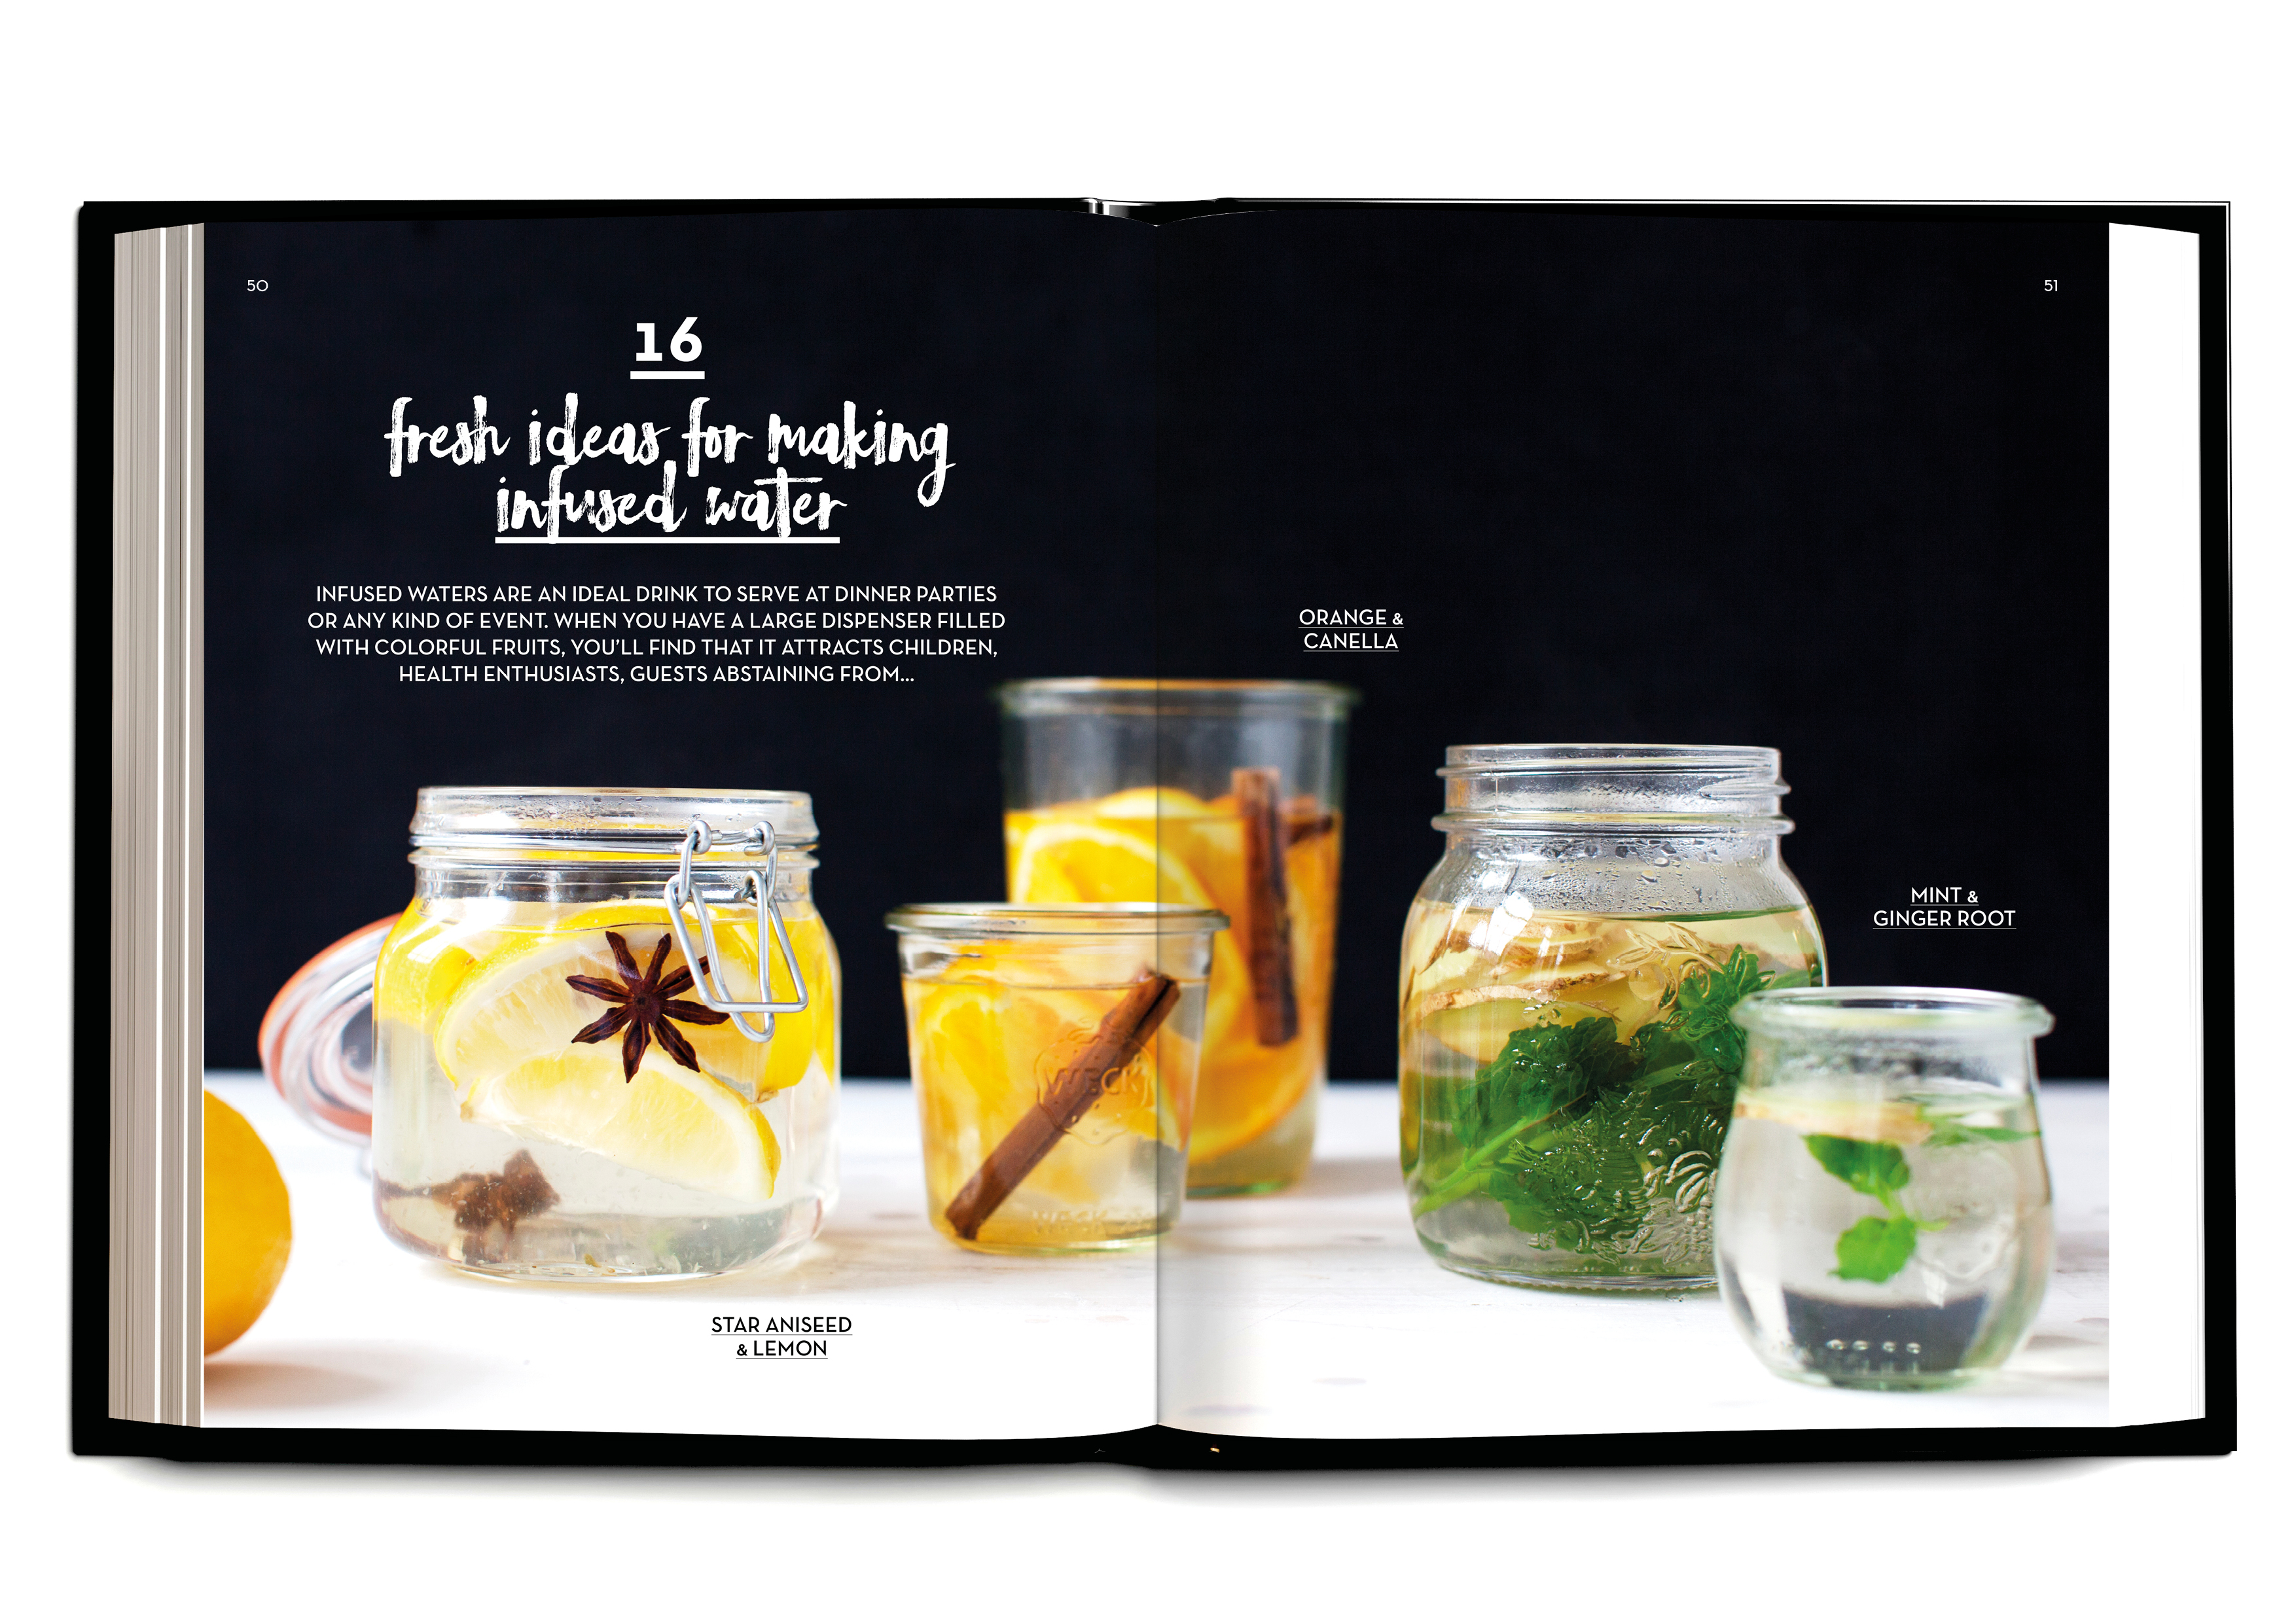 FOODWISE 10/22